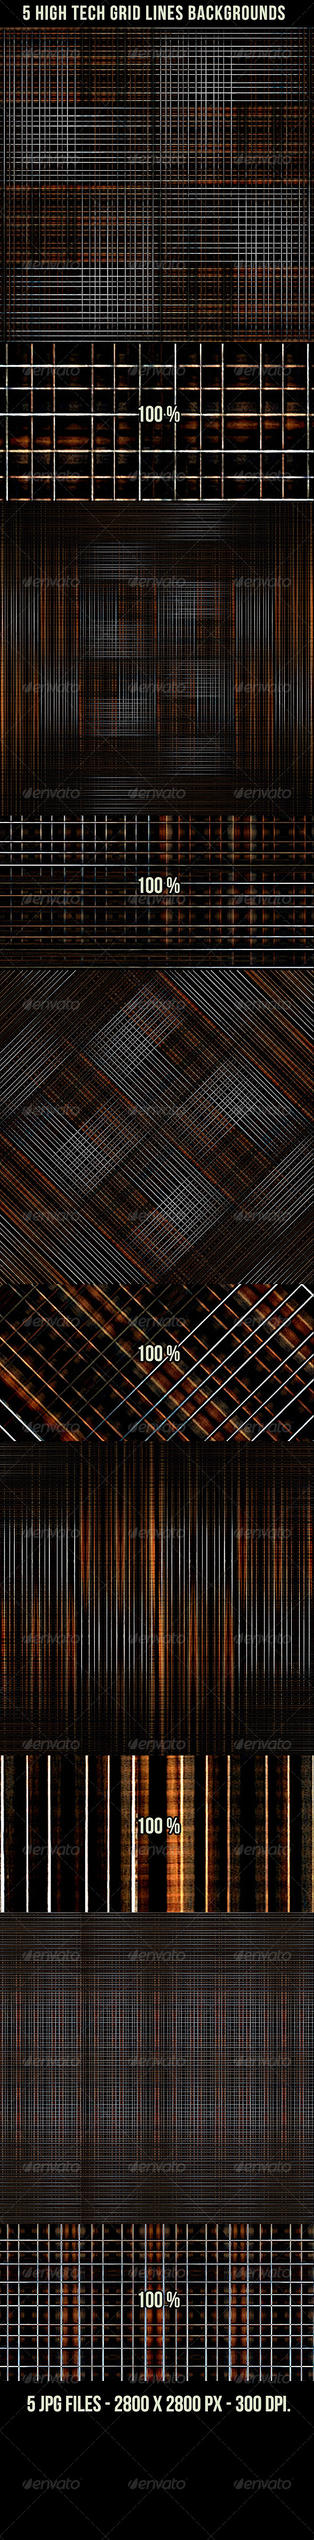 5 High Tech Grid Lines Backgrounds by danfleites